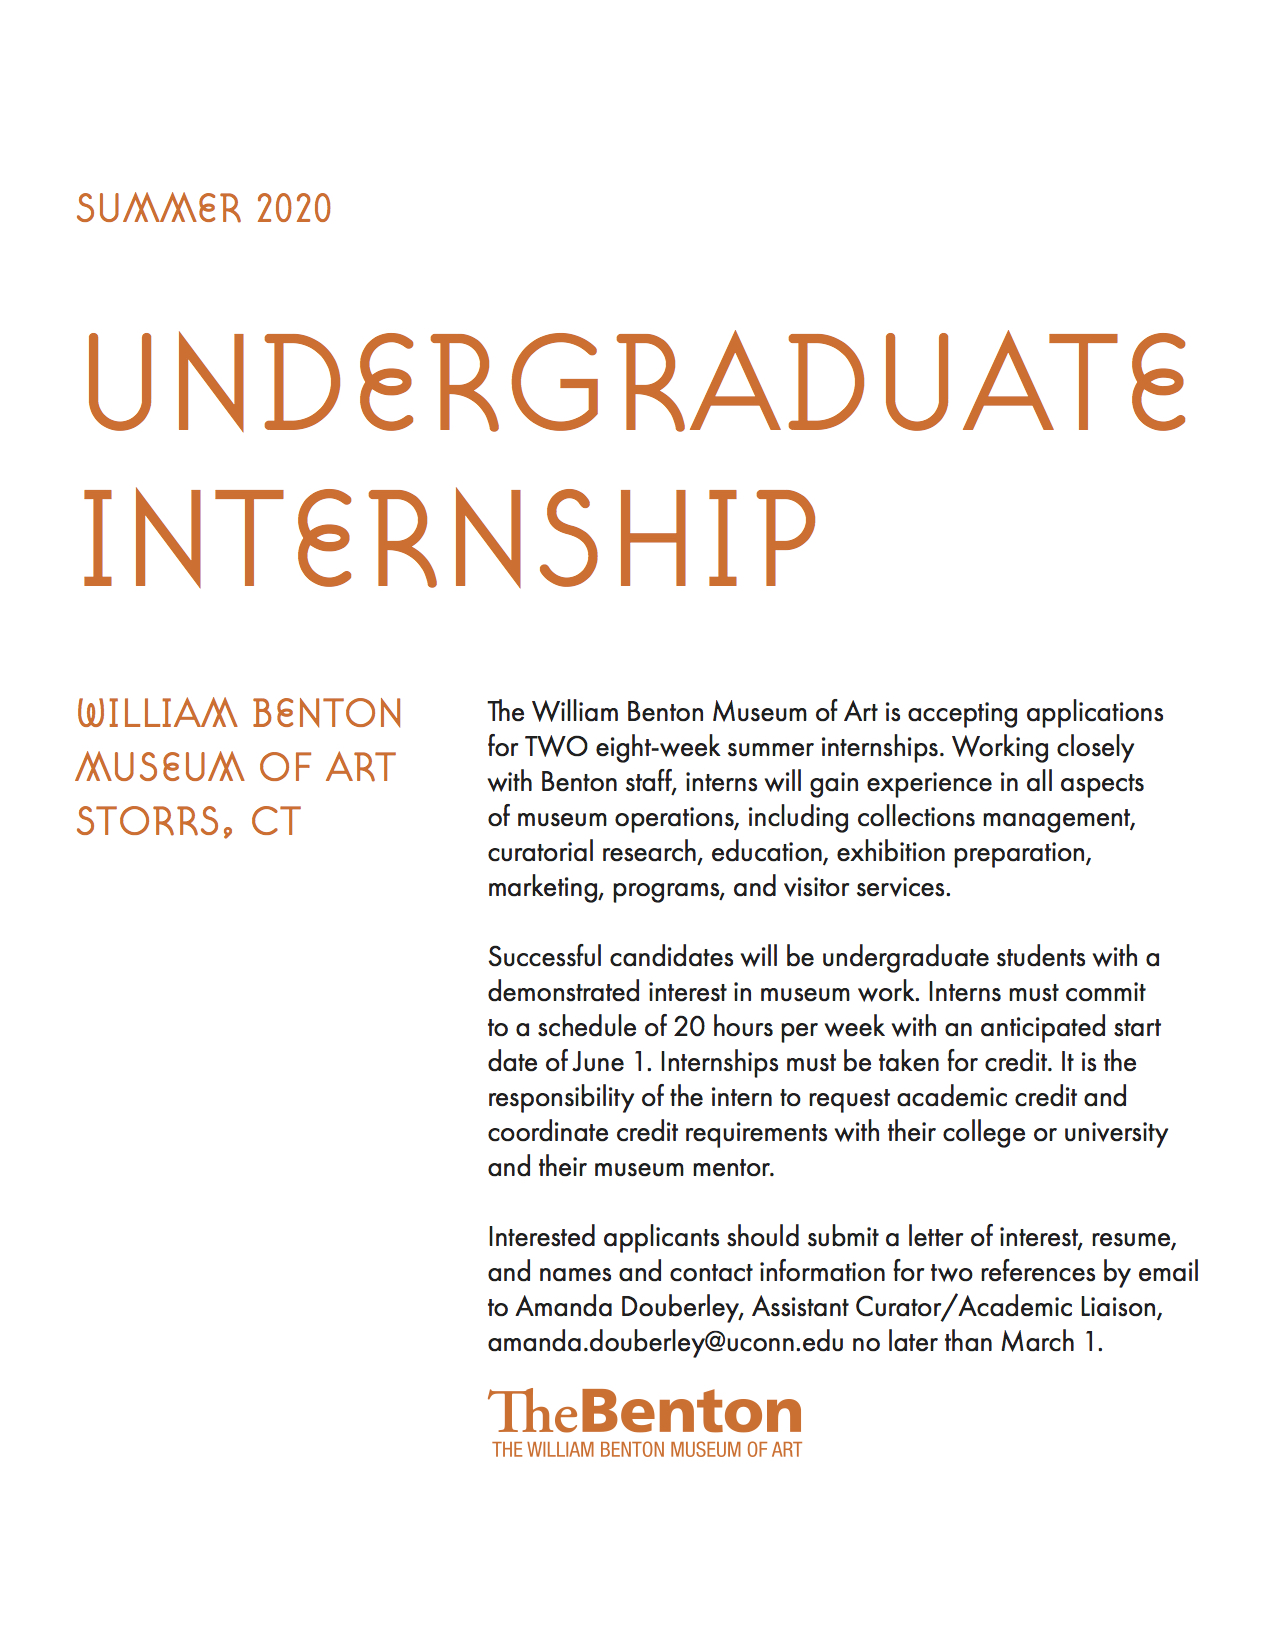 poster with details about the summer 2020 undergraduate internship at the Benton Museum